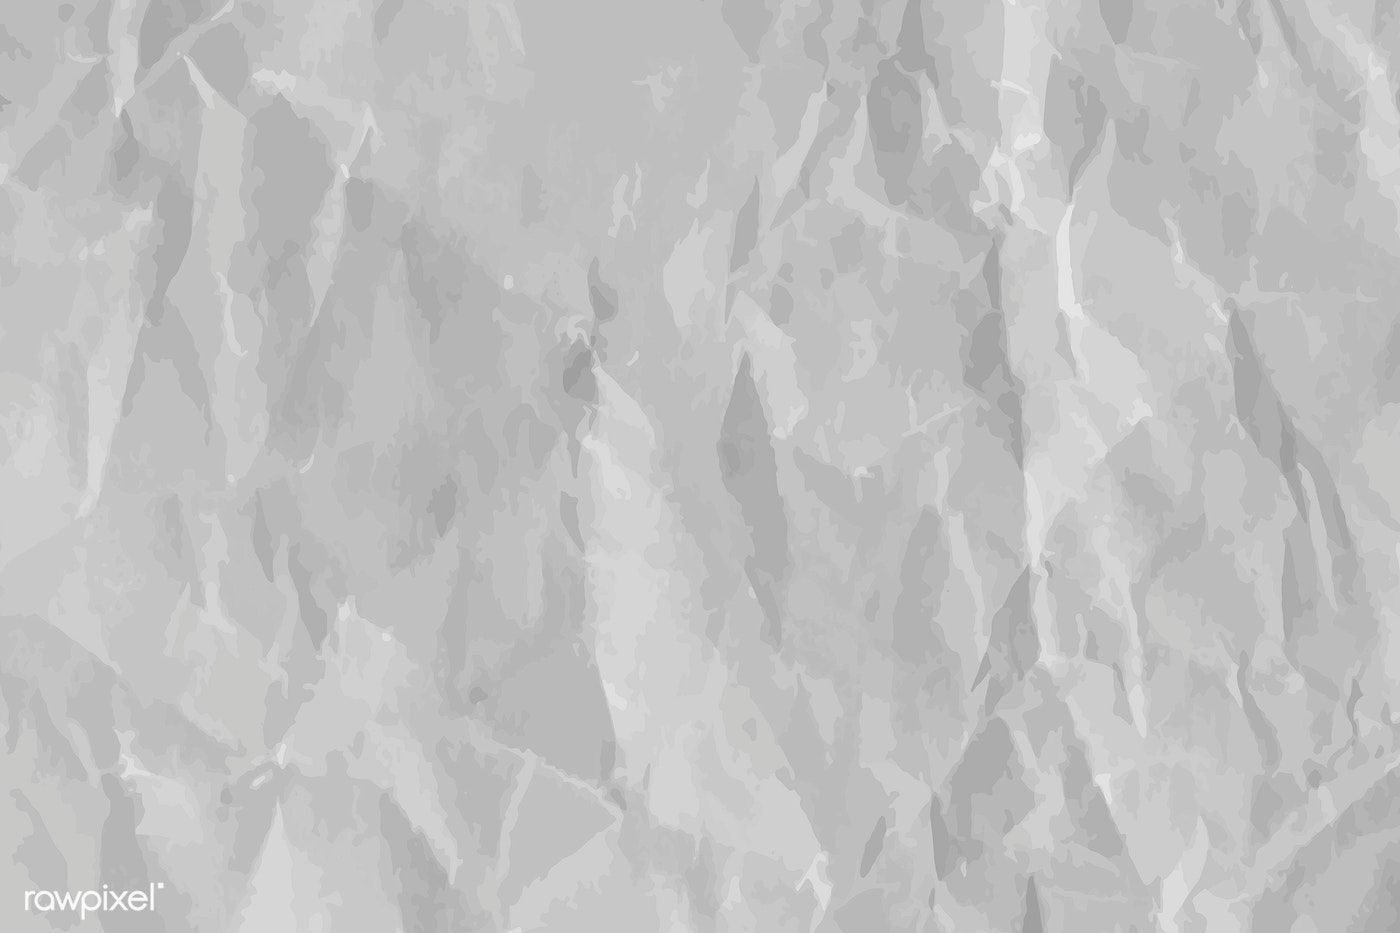 White Crumpled Paper Textured Background Vector Free Image By